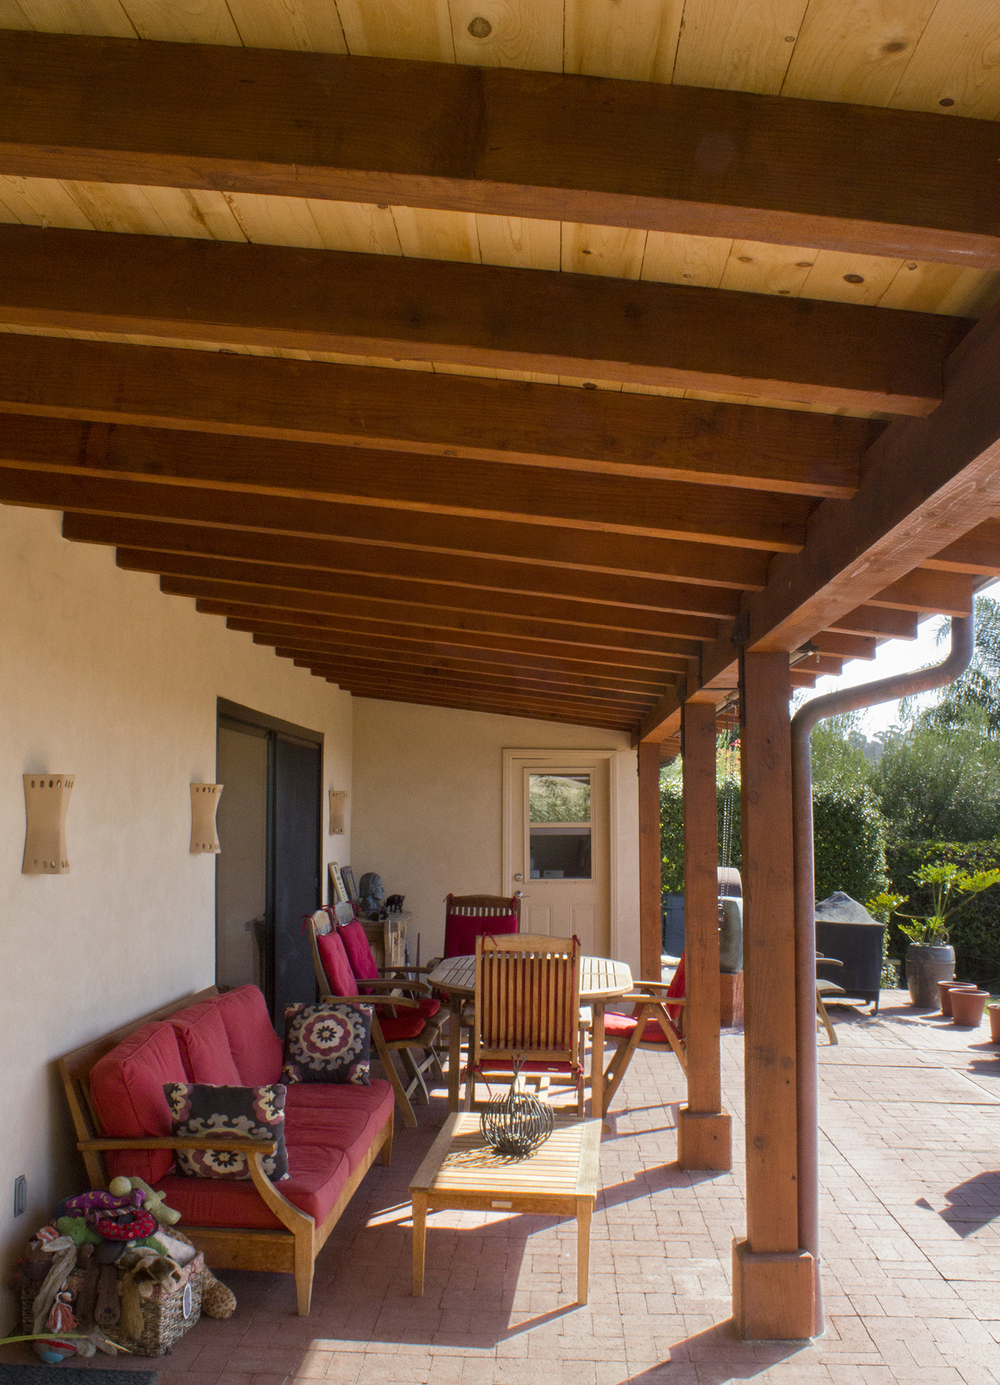 Expansive back patio with the continued exposed beams theme provides a space for entertaining and relaxing.